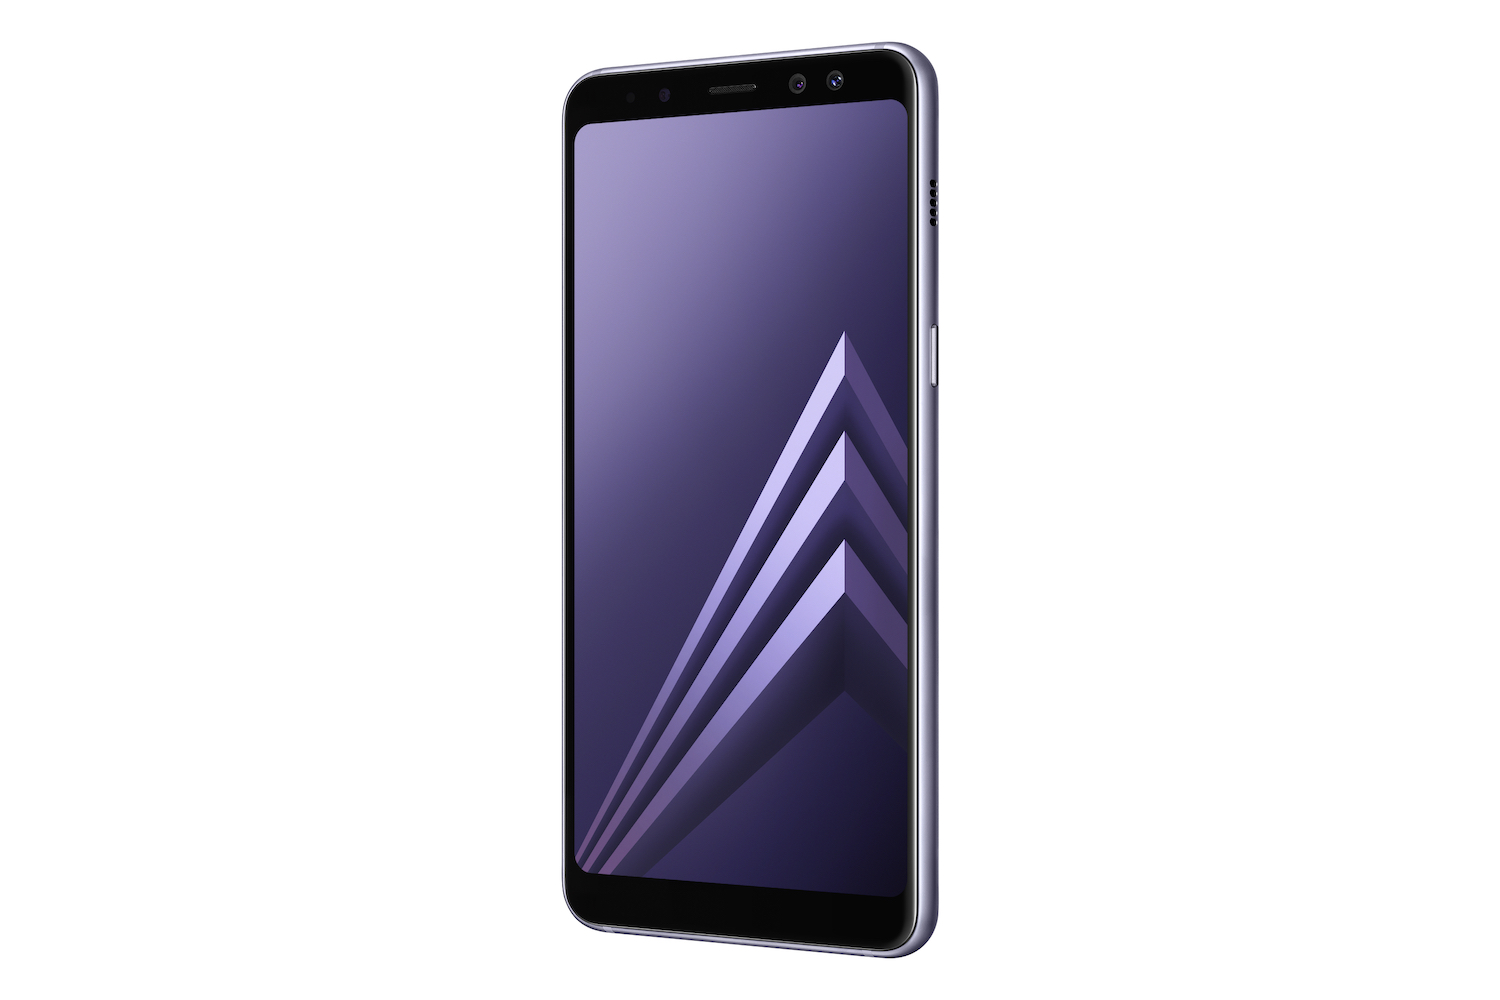 Galaxy A8 Orchid Gray 4